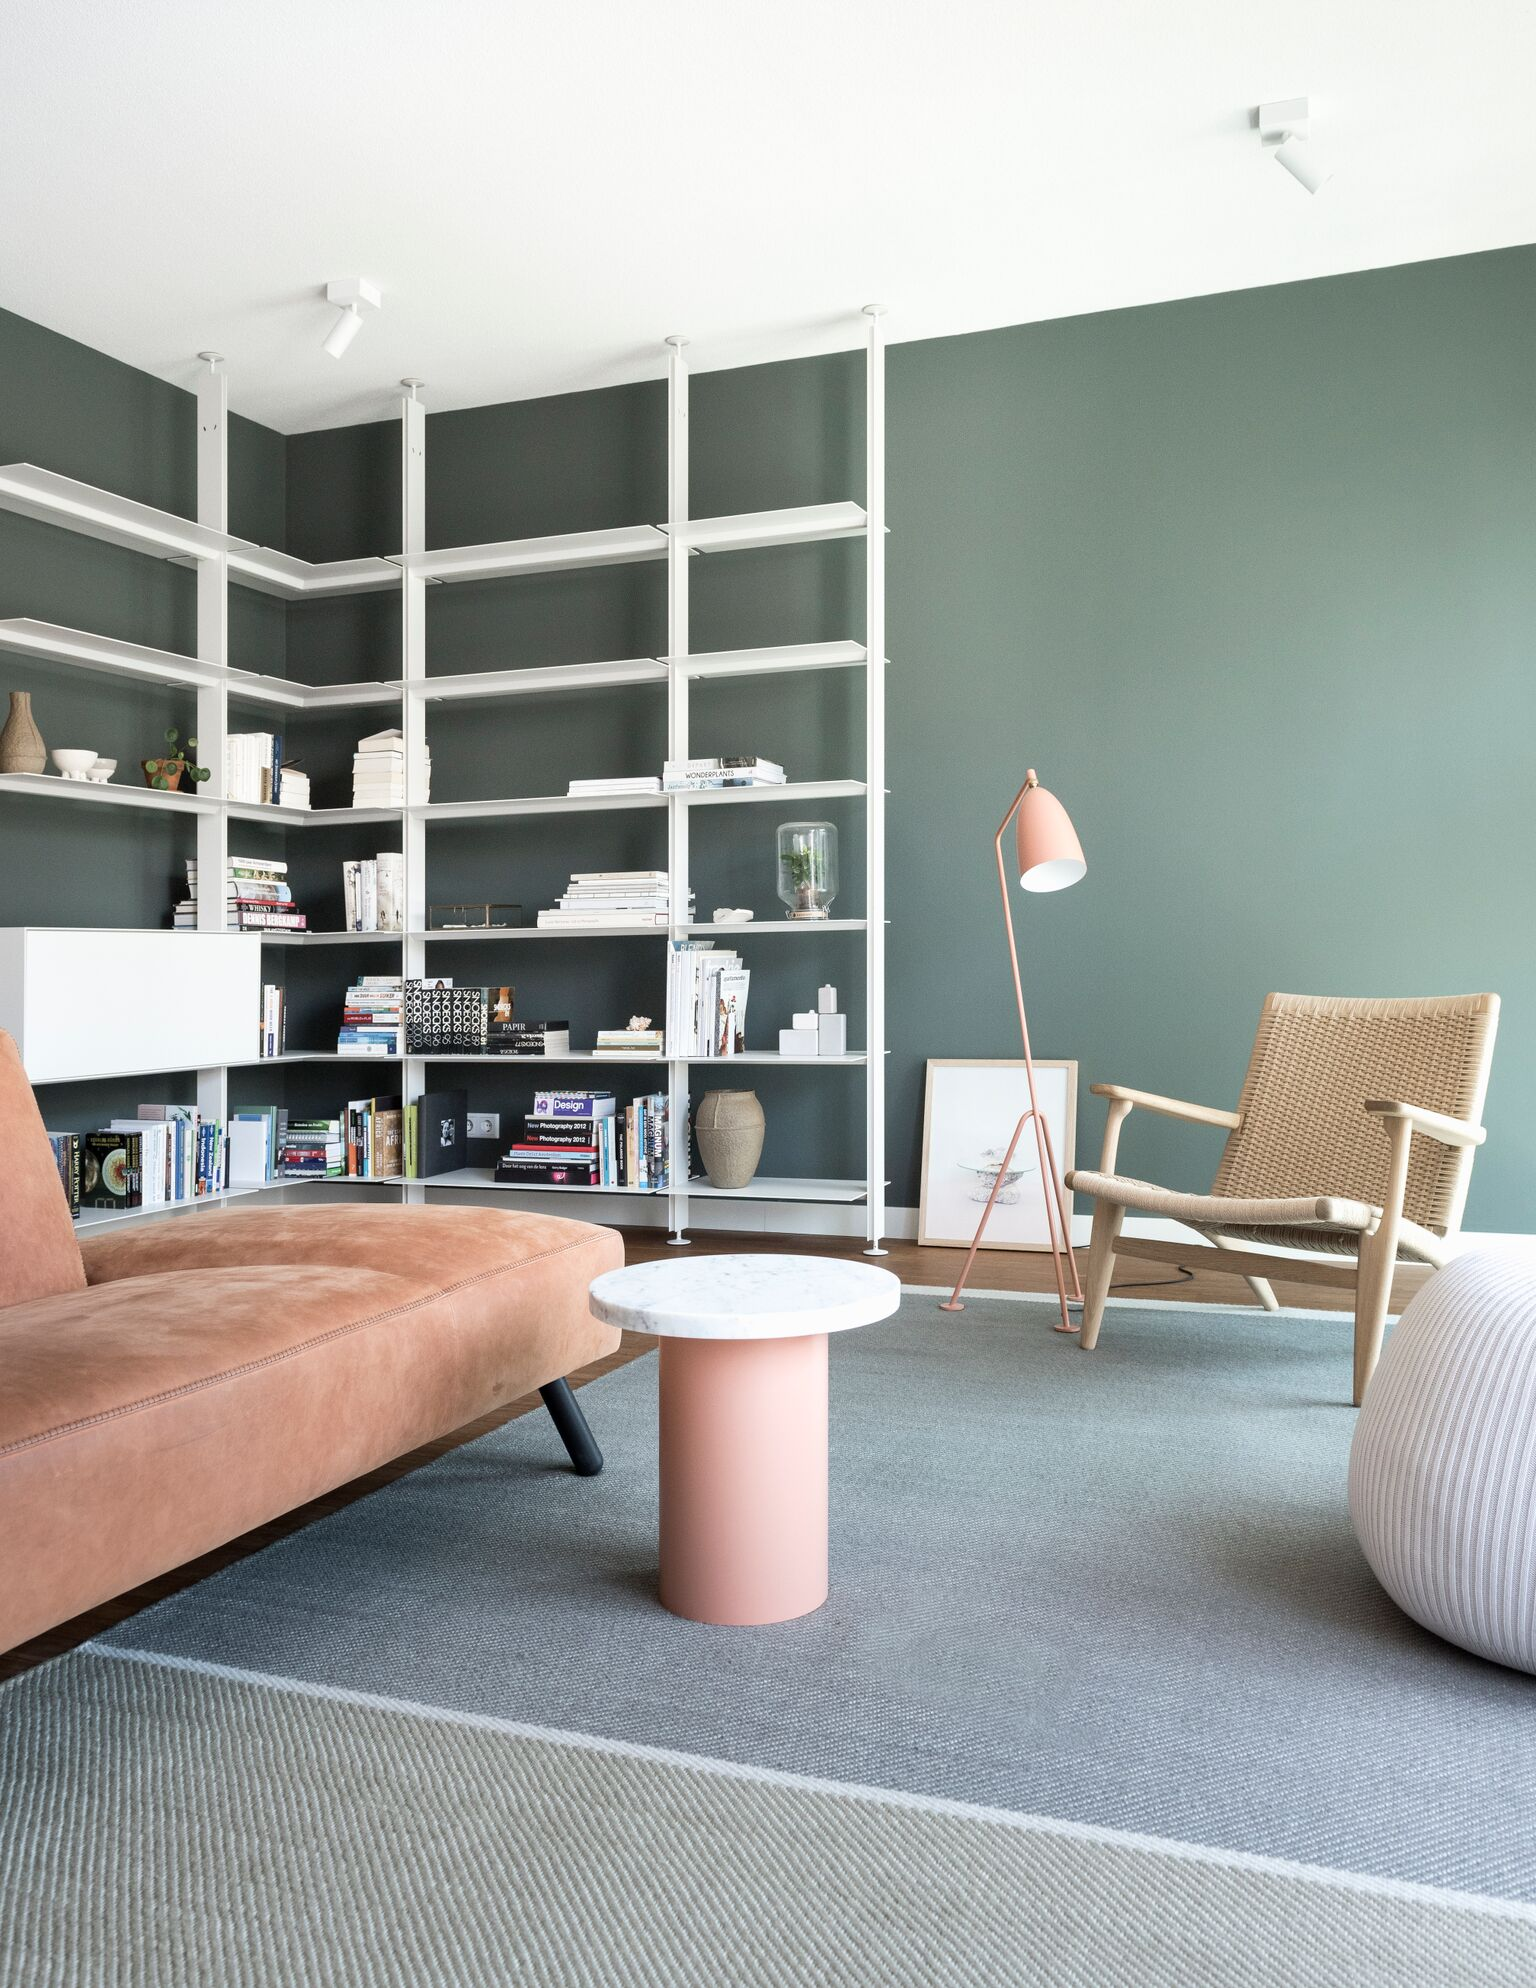 interiorproject_Amsterdam-april and May-06.jpg